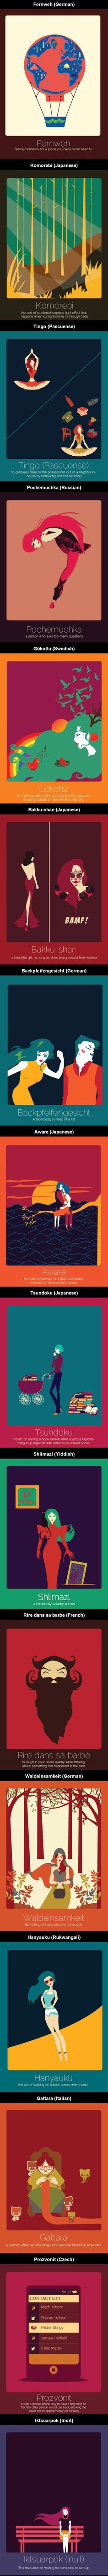 16 Untranslatable Words From Other Languages Illustrated By Anjana Iyer.